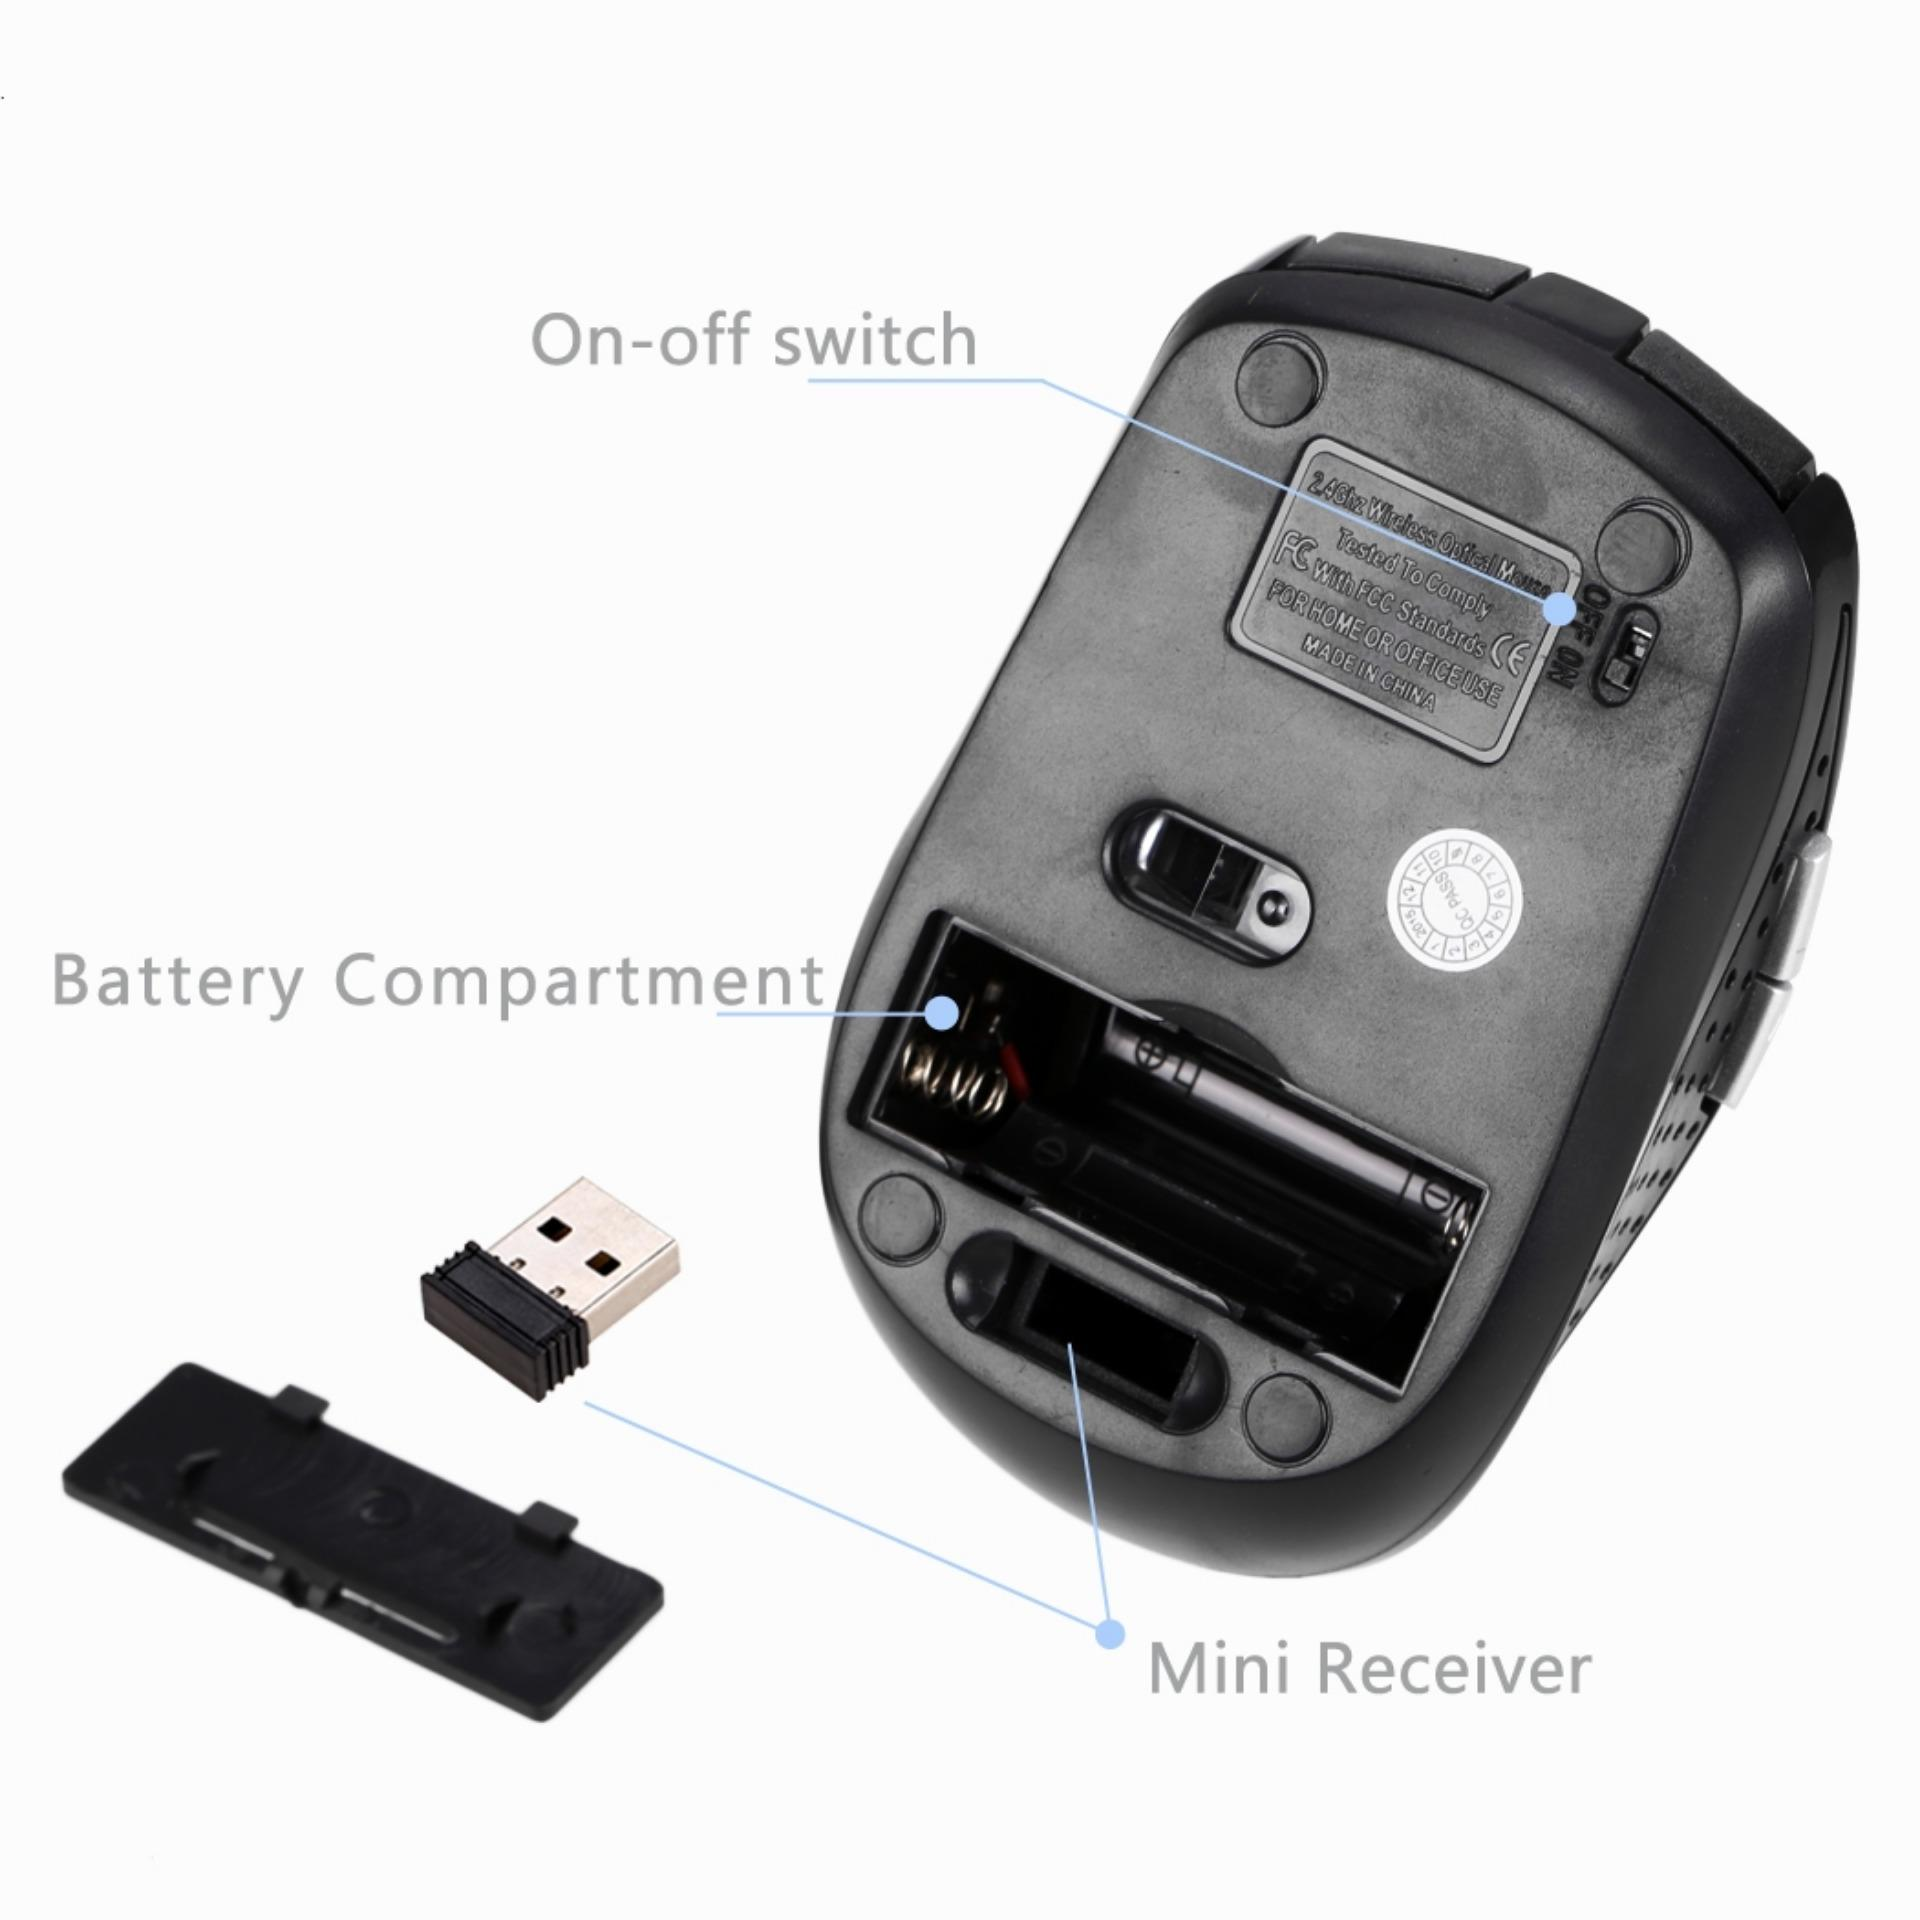 In 2.4 gHz Wireless USB mouse optik nirkabel untuk laptop PCKomputer + USB receiver ...